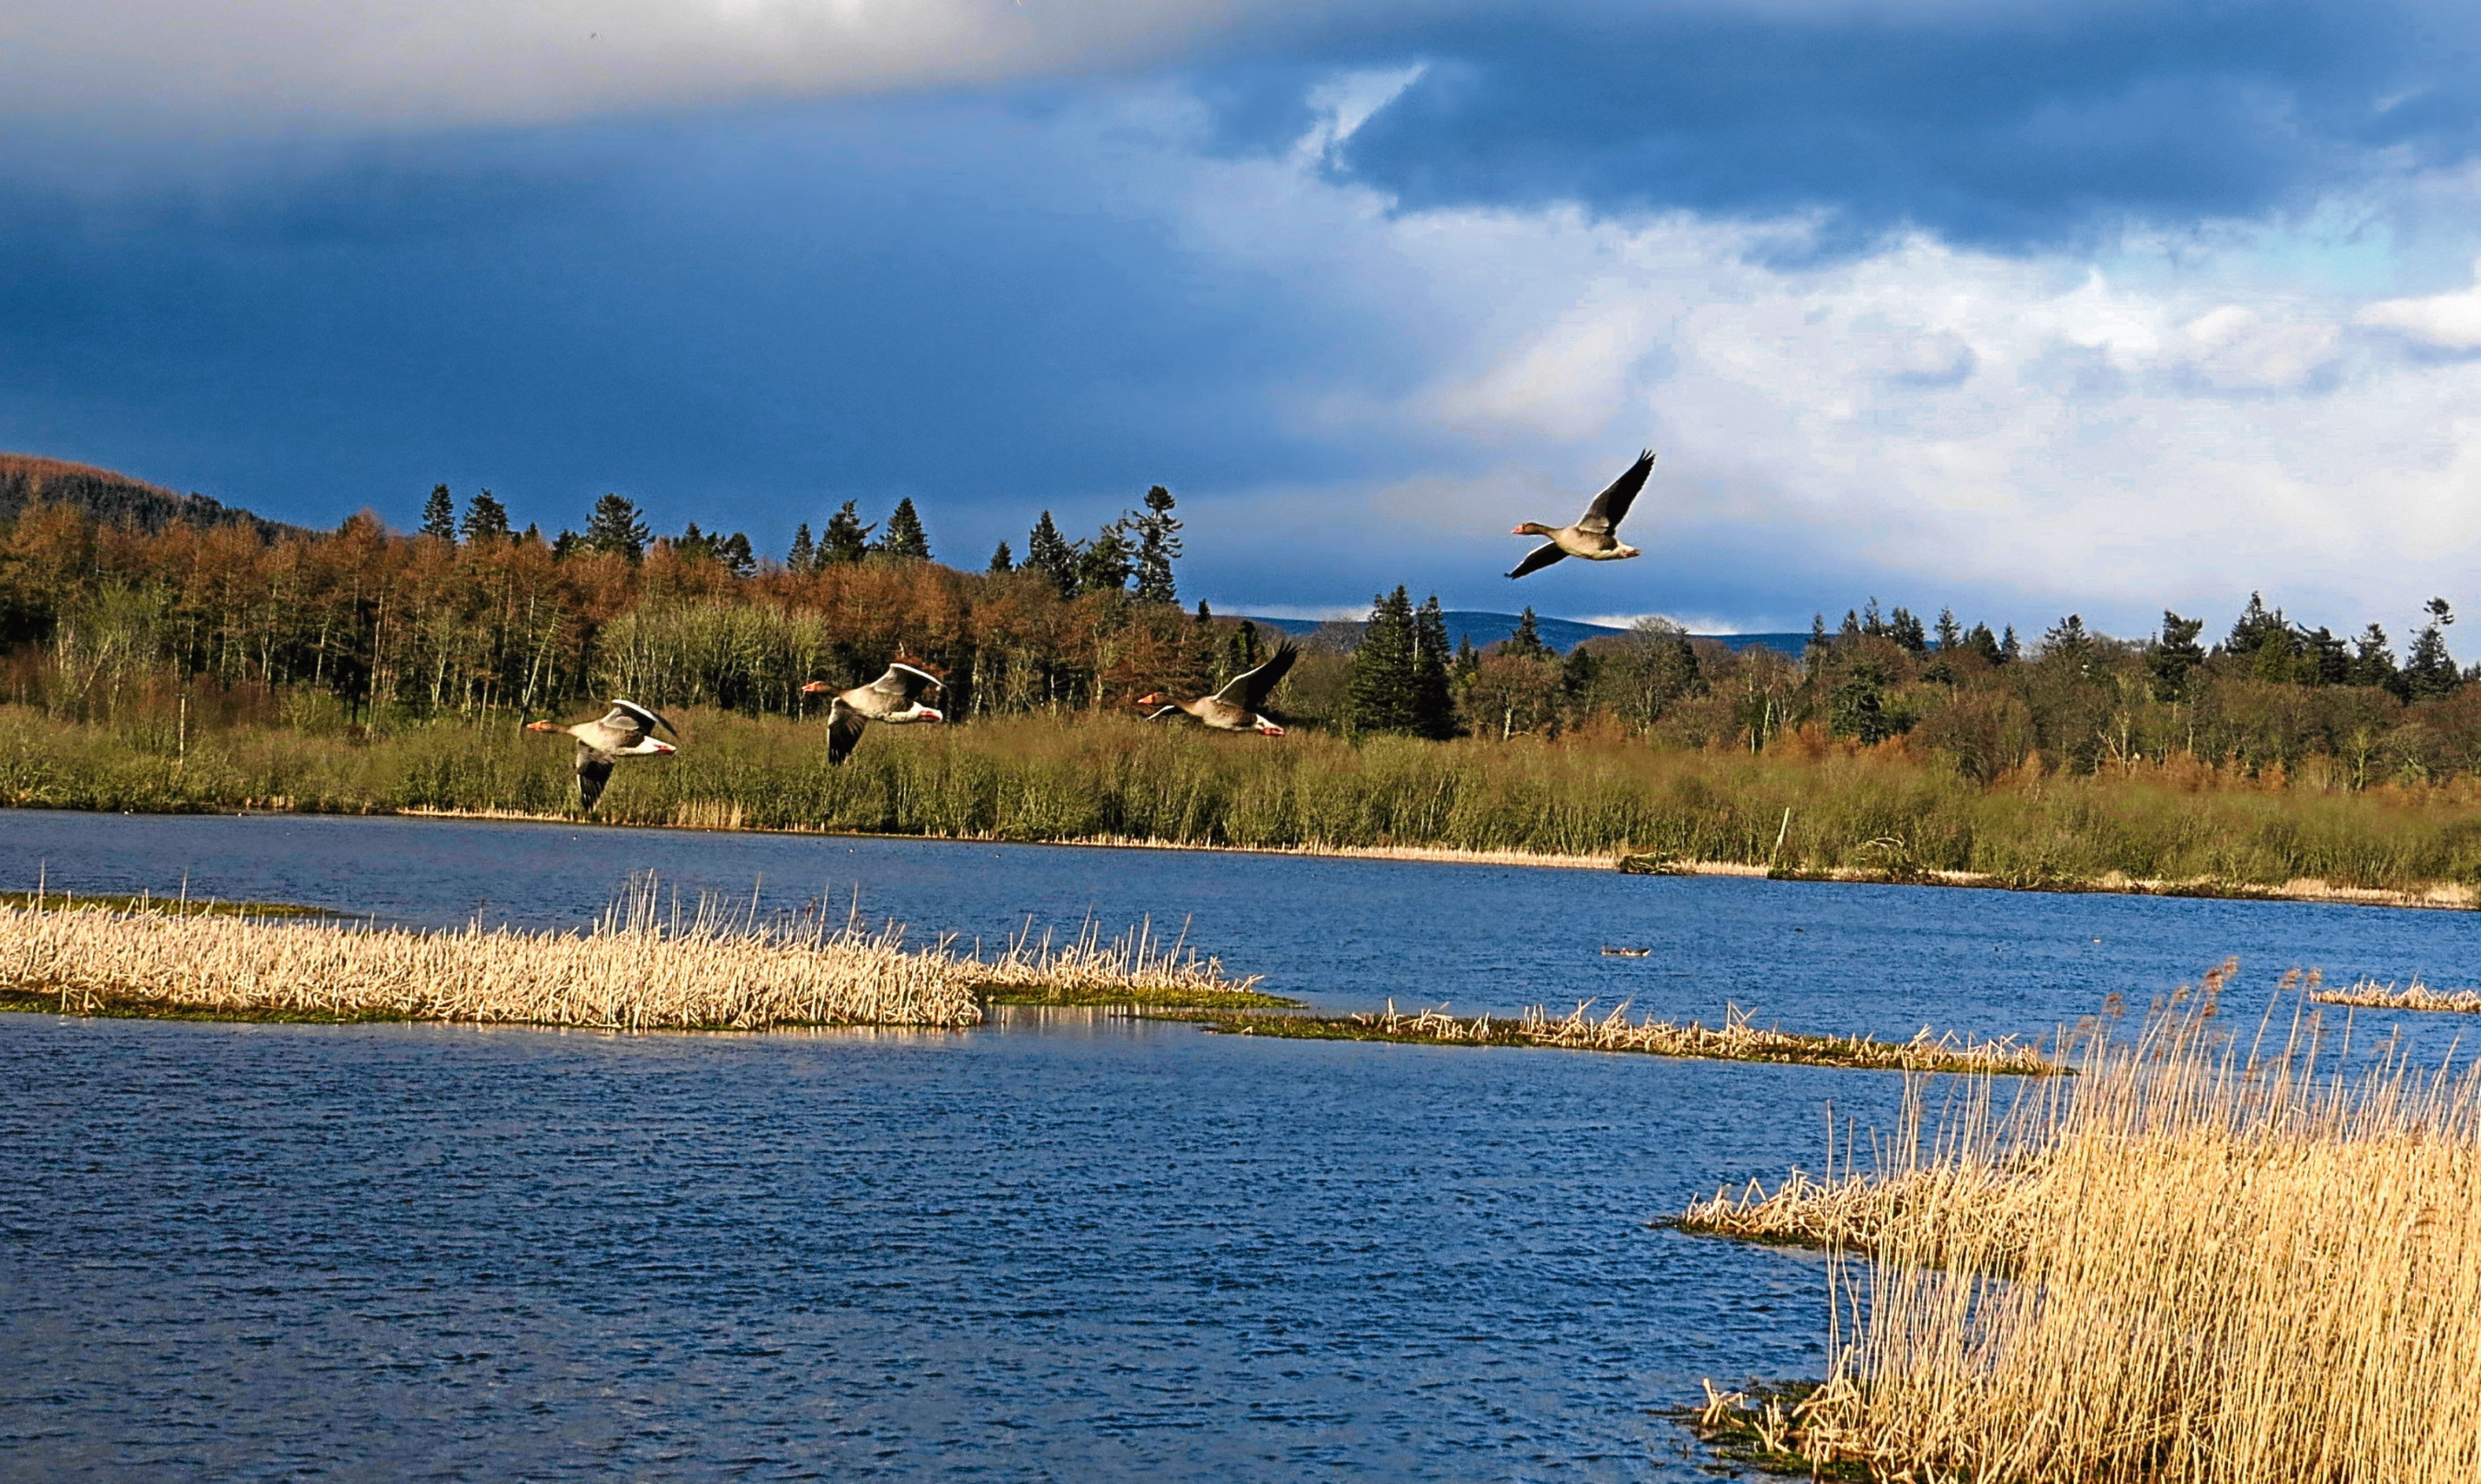 Geese in flight over the nature reserve at Loch of Kinnordy near Kirriemuir.